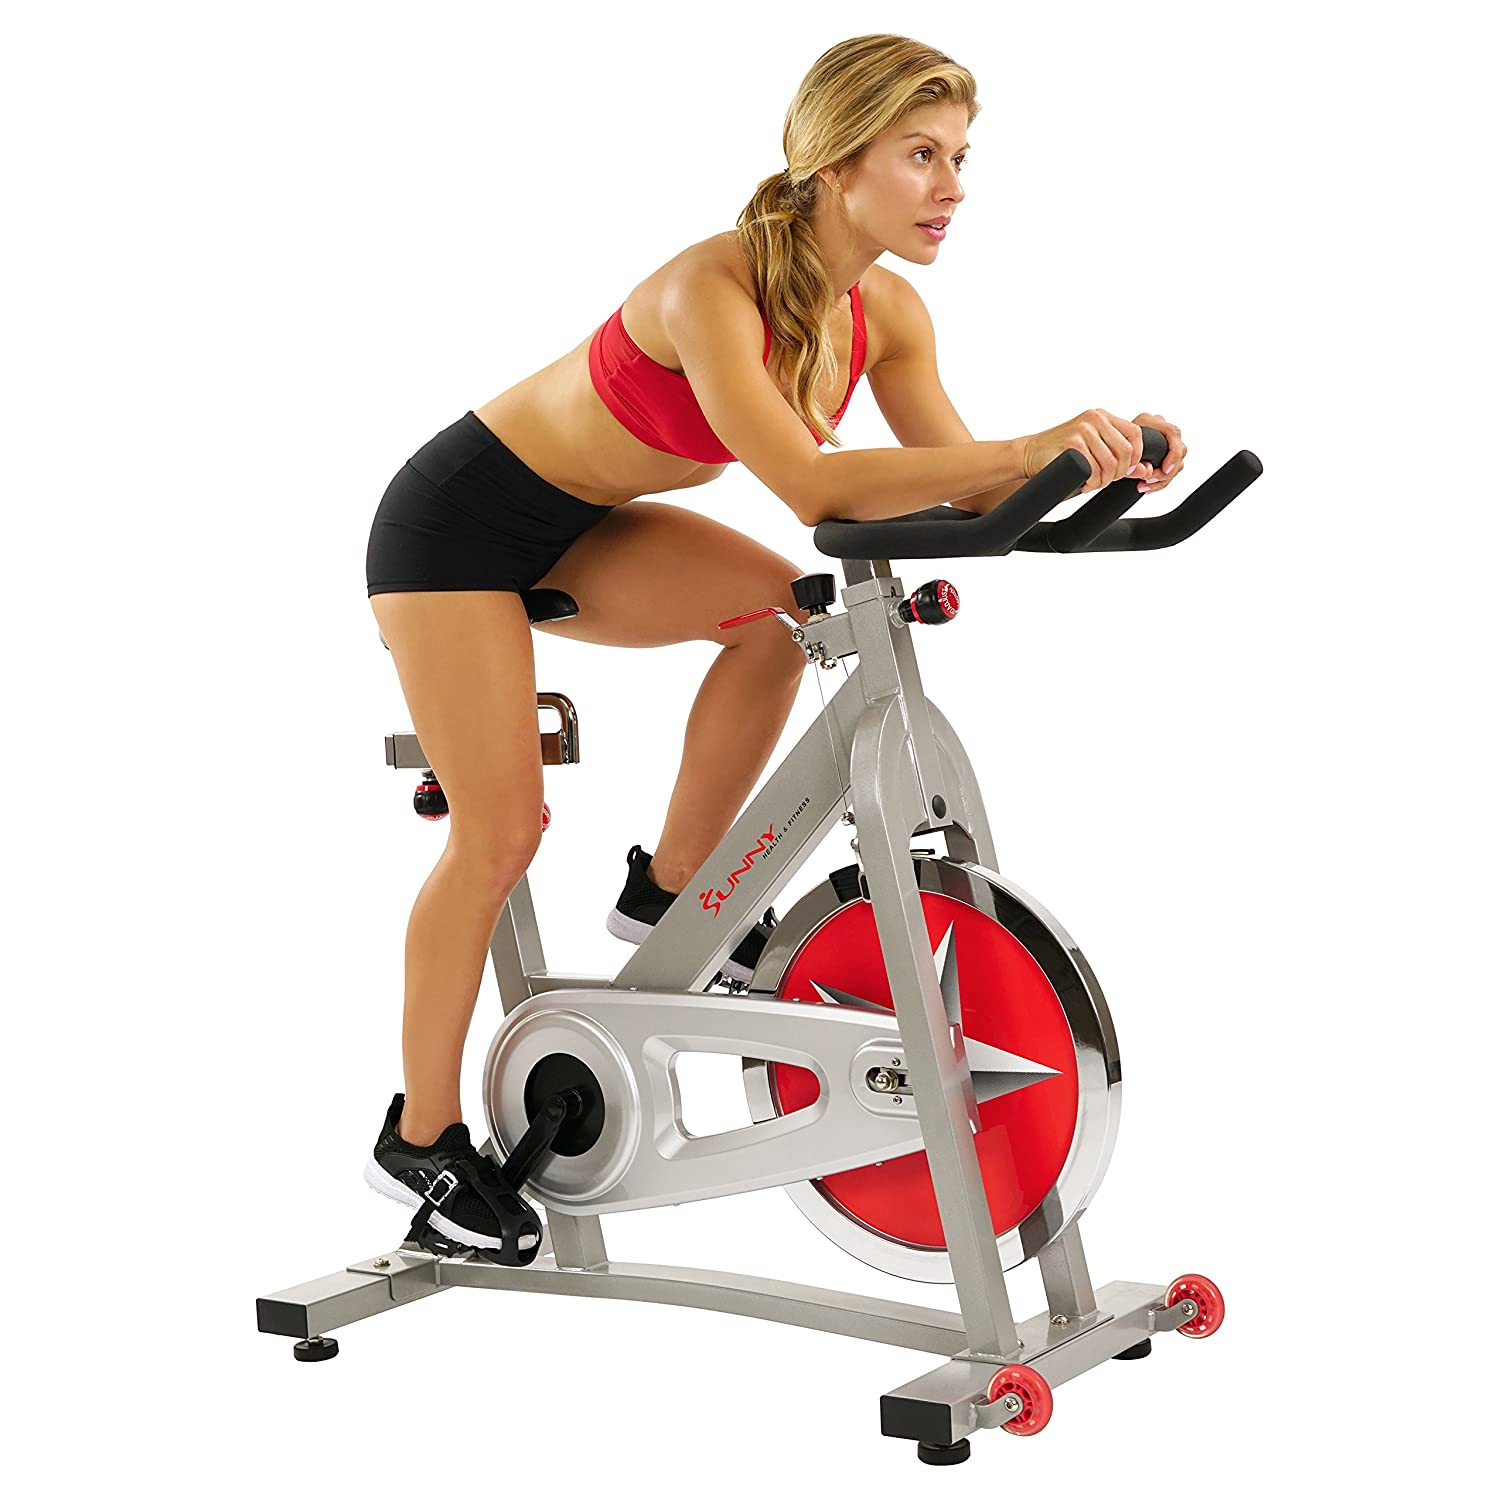 Sunny Health & Fitness Spin Bike Black Friday Deal 2020